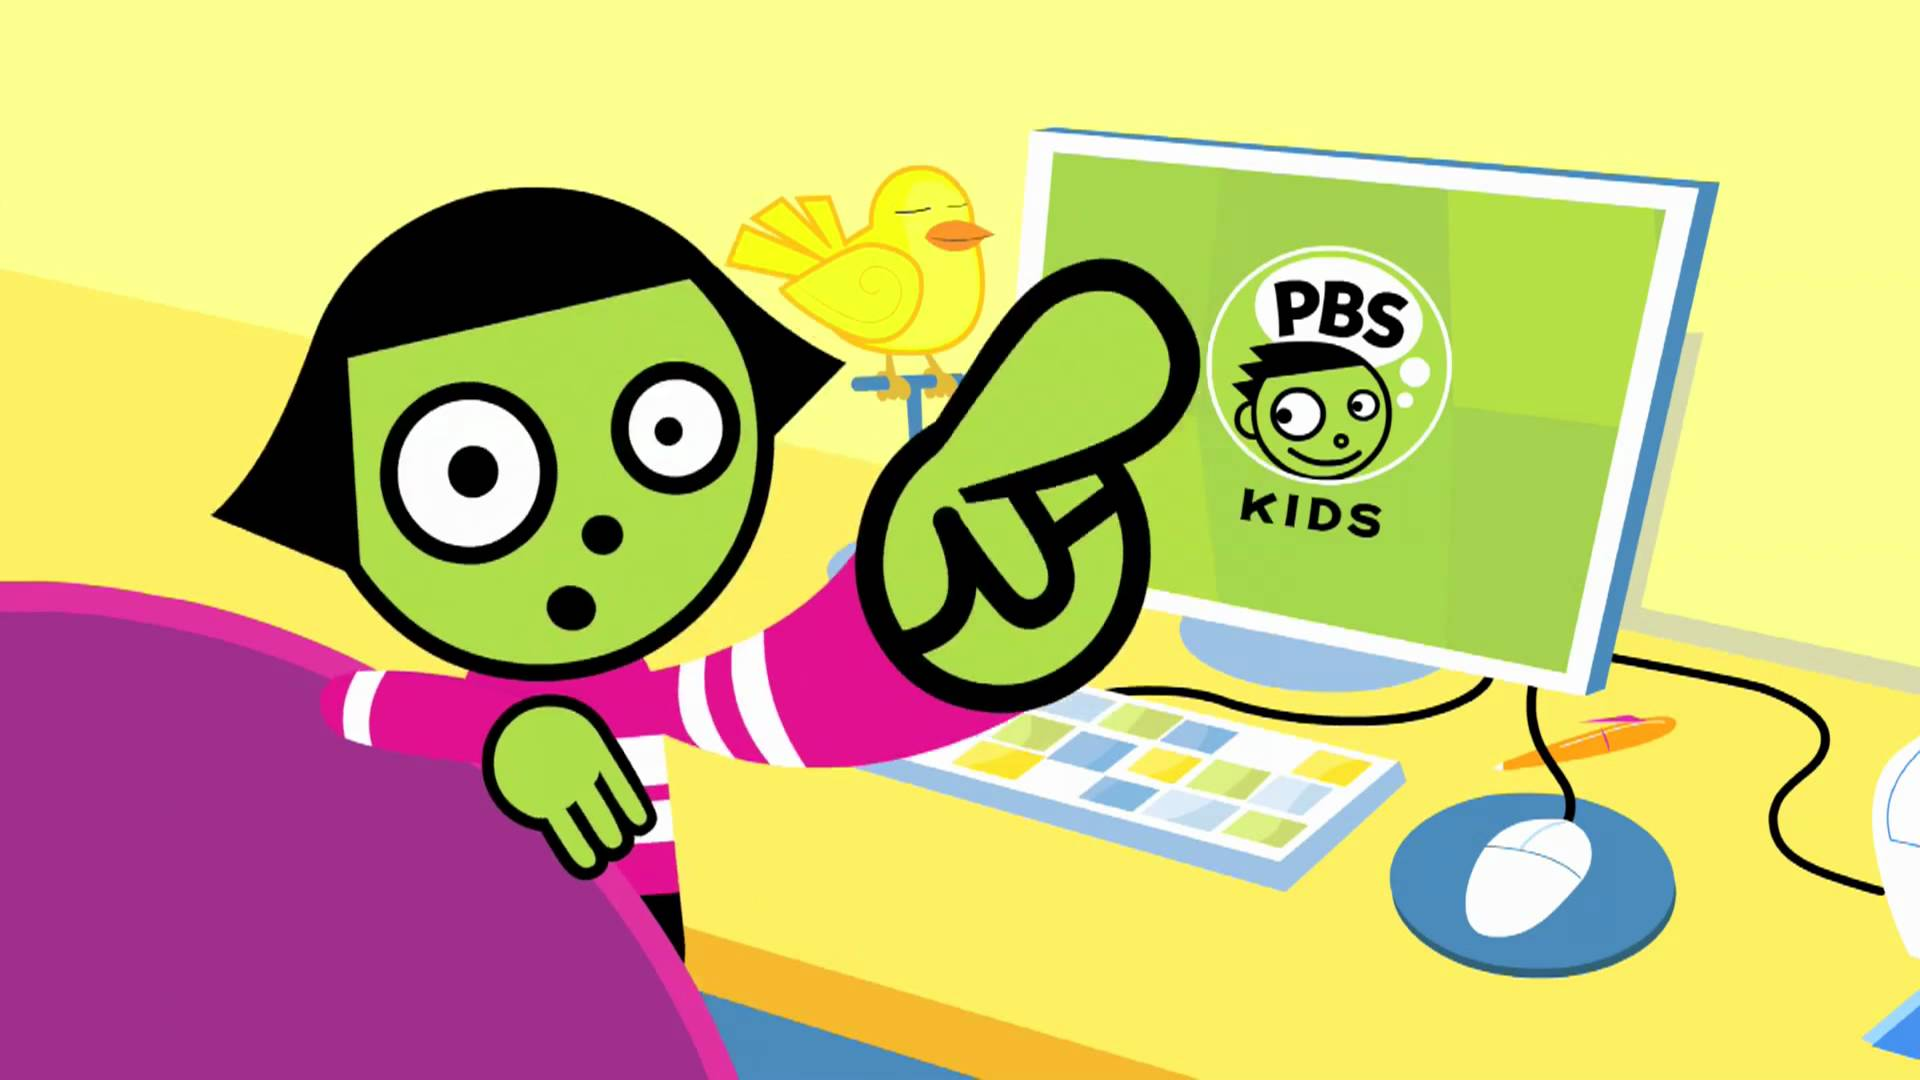 PBS Kids image, cartoon girl sitting in front of a computer monitor with PBS kids logo